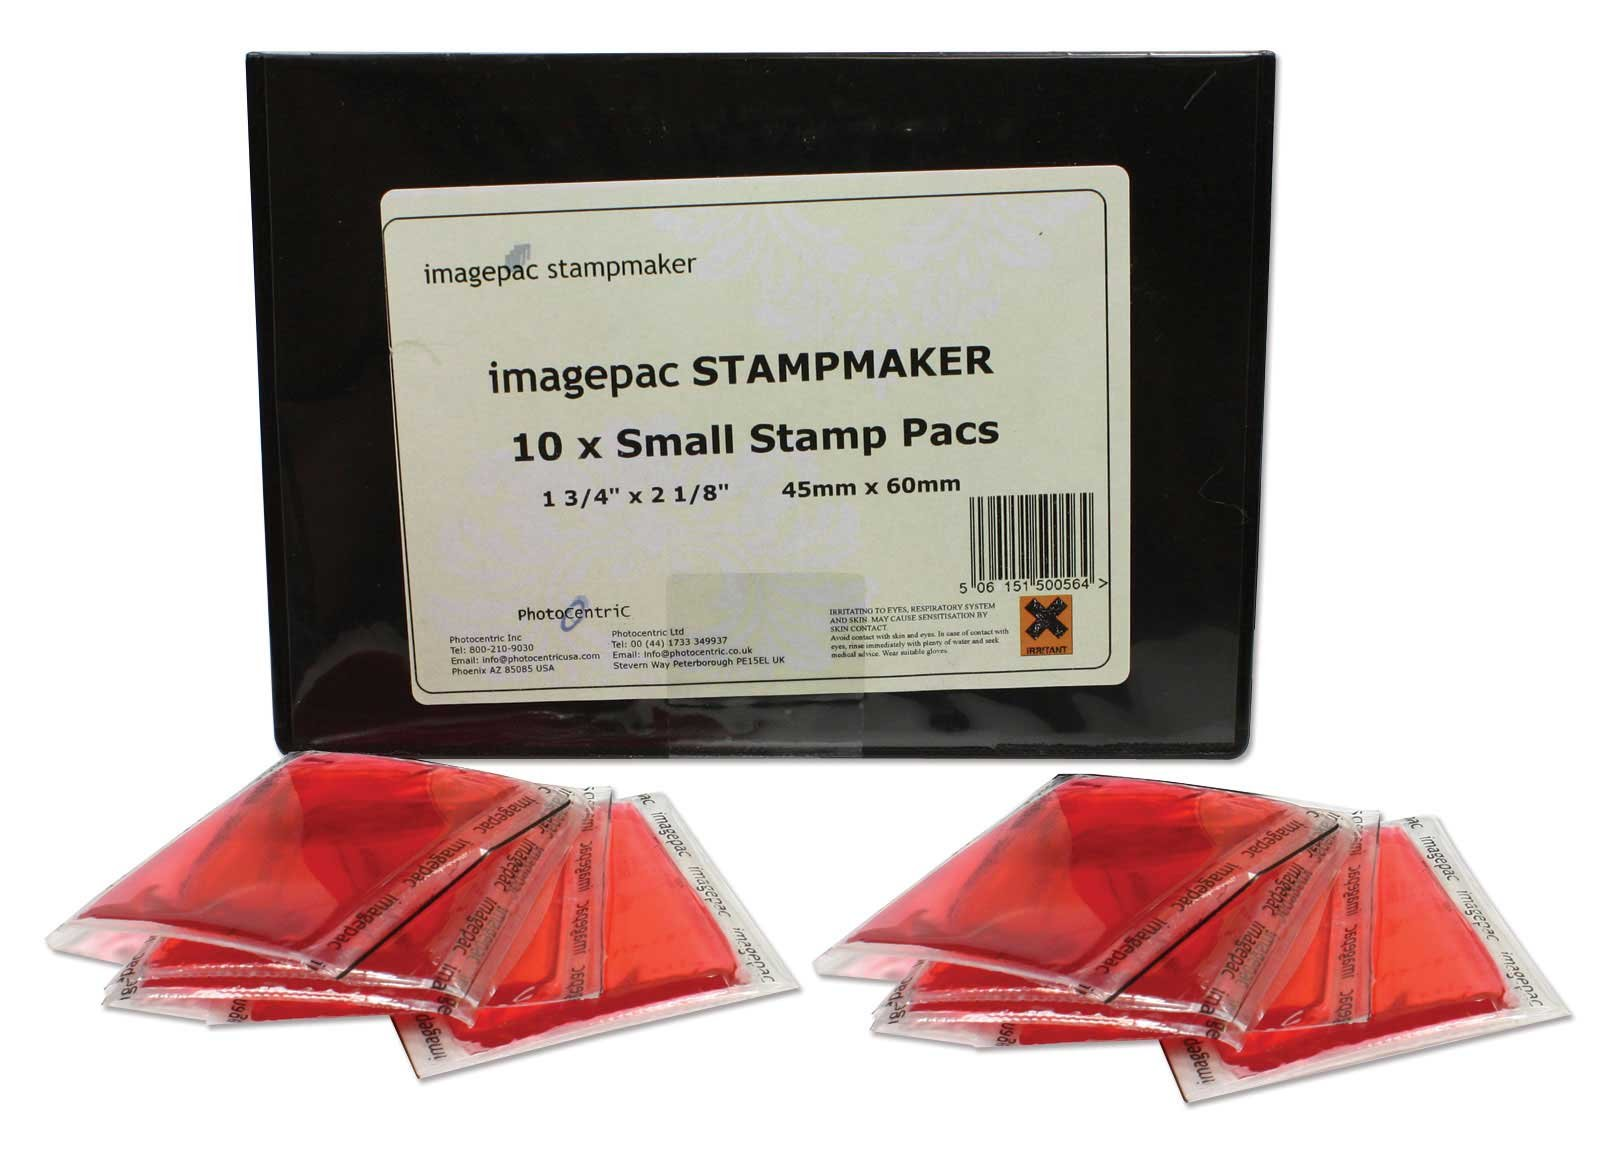 Imagepac Stamp Pack, Small 1-3/4 x 2-1/8'' Size, 10 Pack